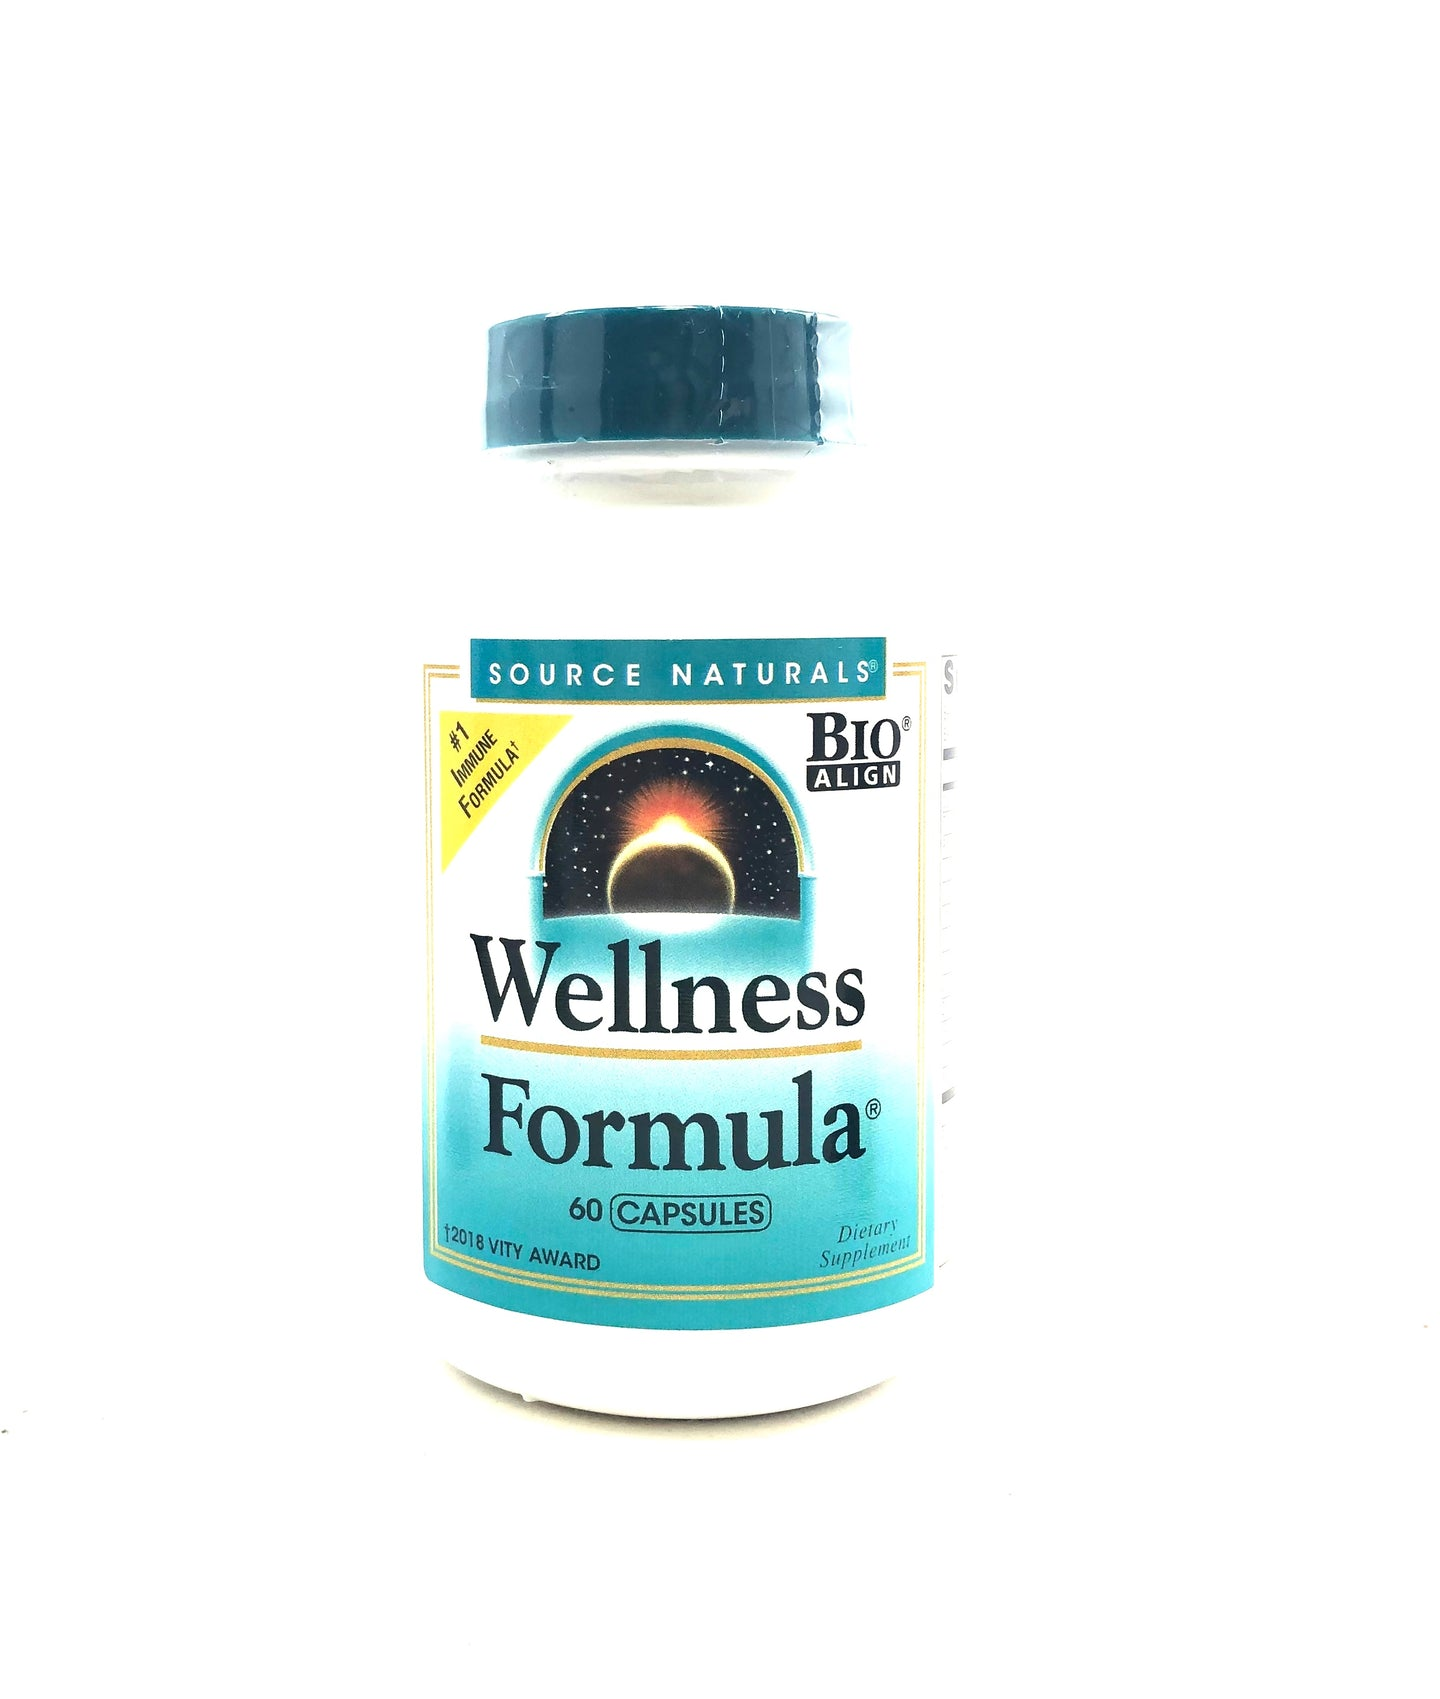 Source Naturals Wellness Formula 60 Capsules